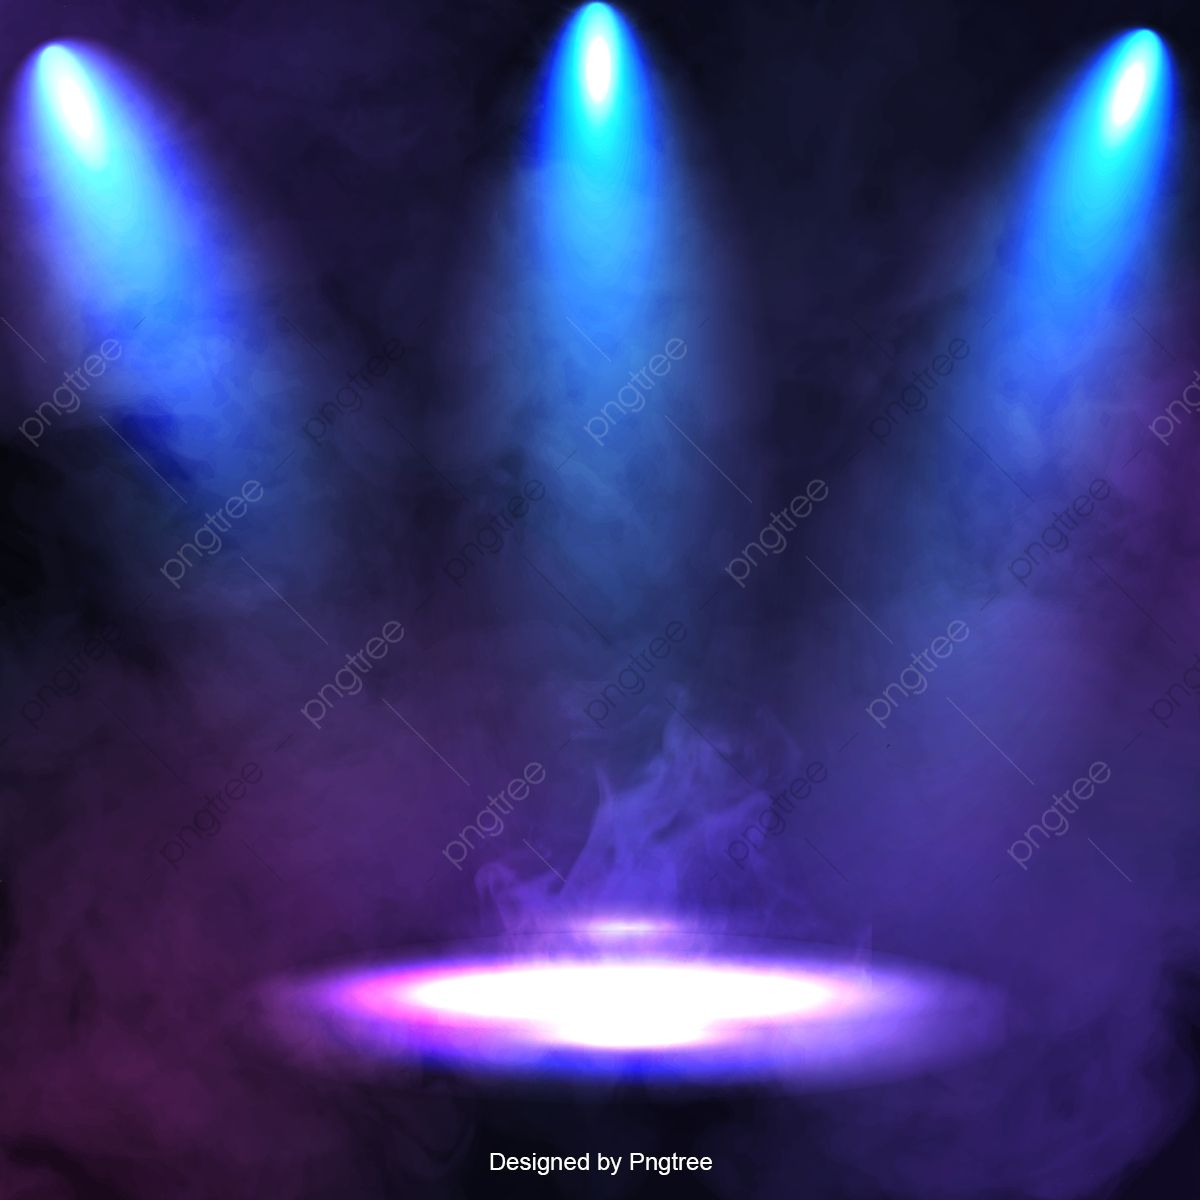 Stage Lighting Effects Vector Light Stage Irradiate Png And Vector With Transparent Background For Free Download Lighting Design Theatre Stage Lighting Graphic Design Stages